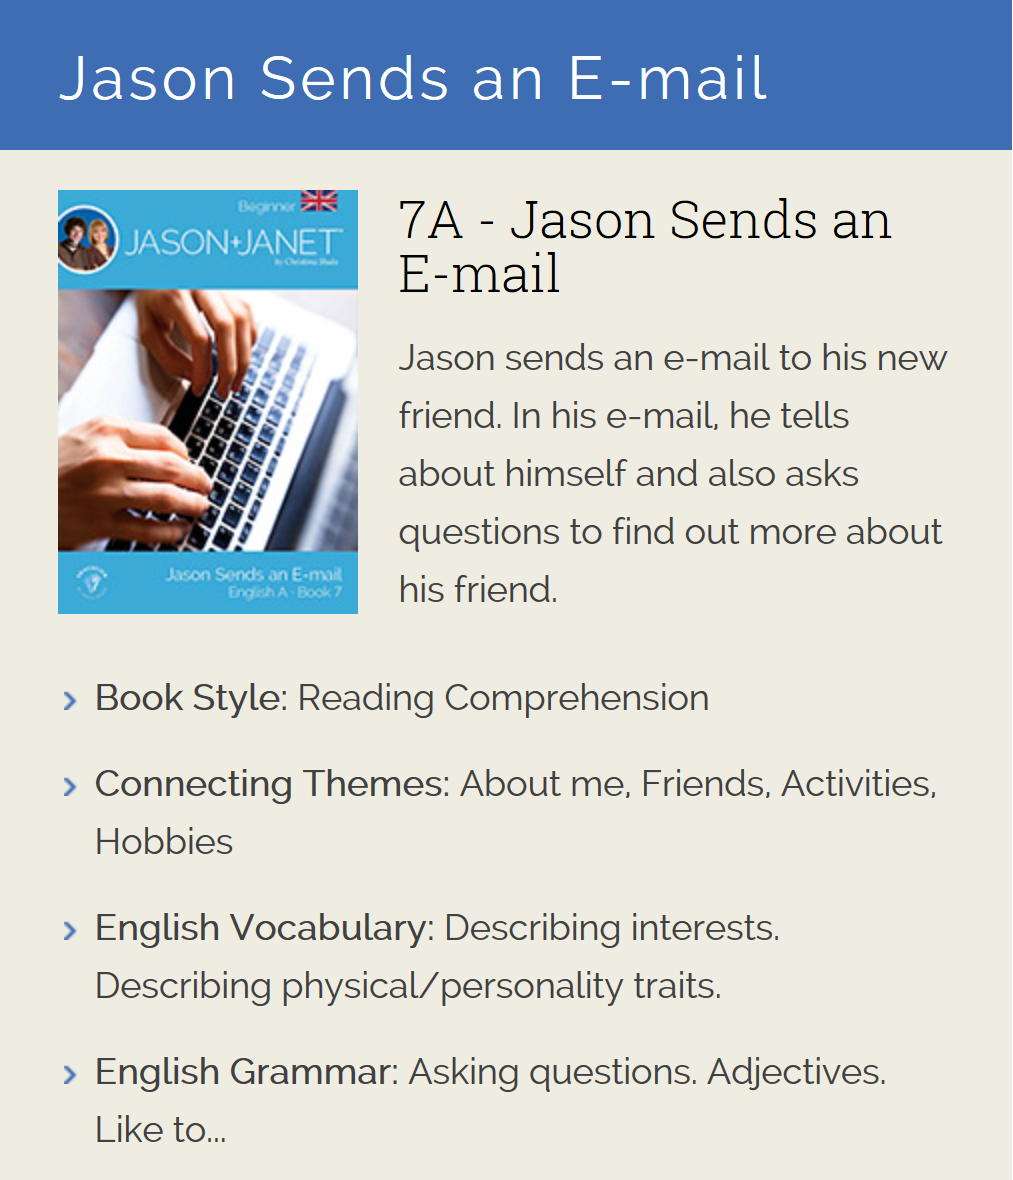 Jason Sends an E-mail - ESL eBook